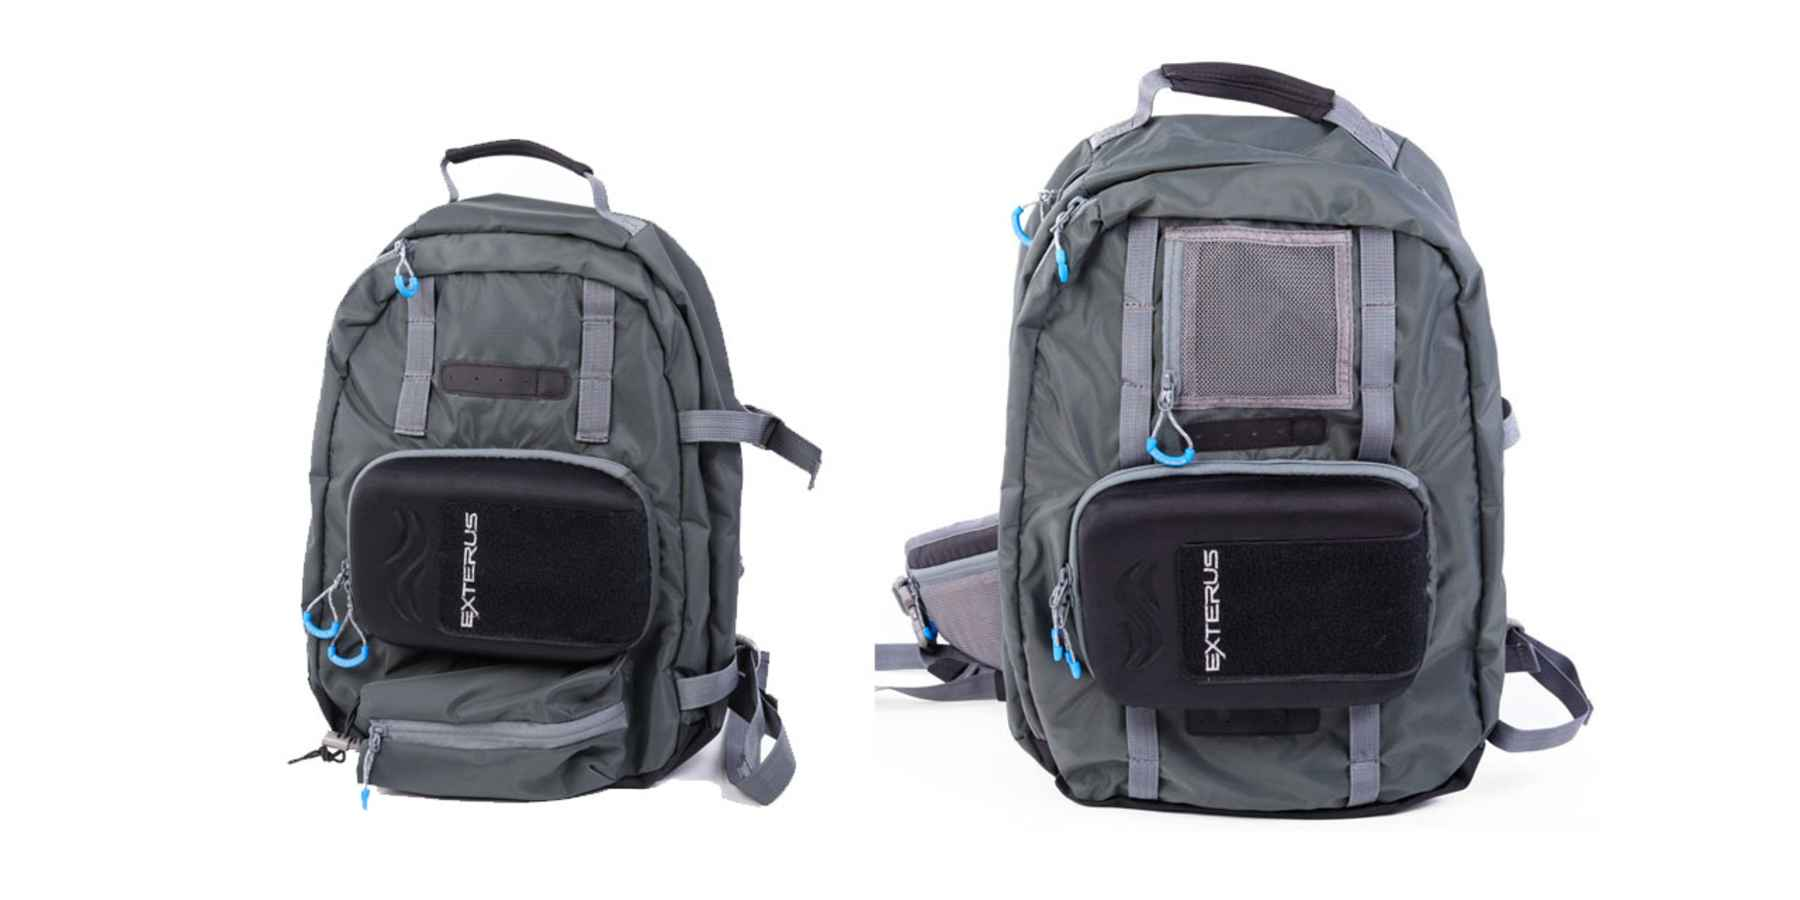 Allen fly fishing introduces new exterus line of bags and for Fly fishing sling pack